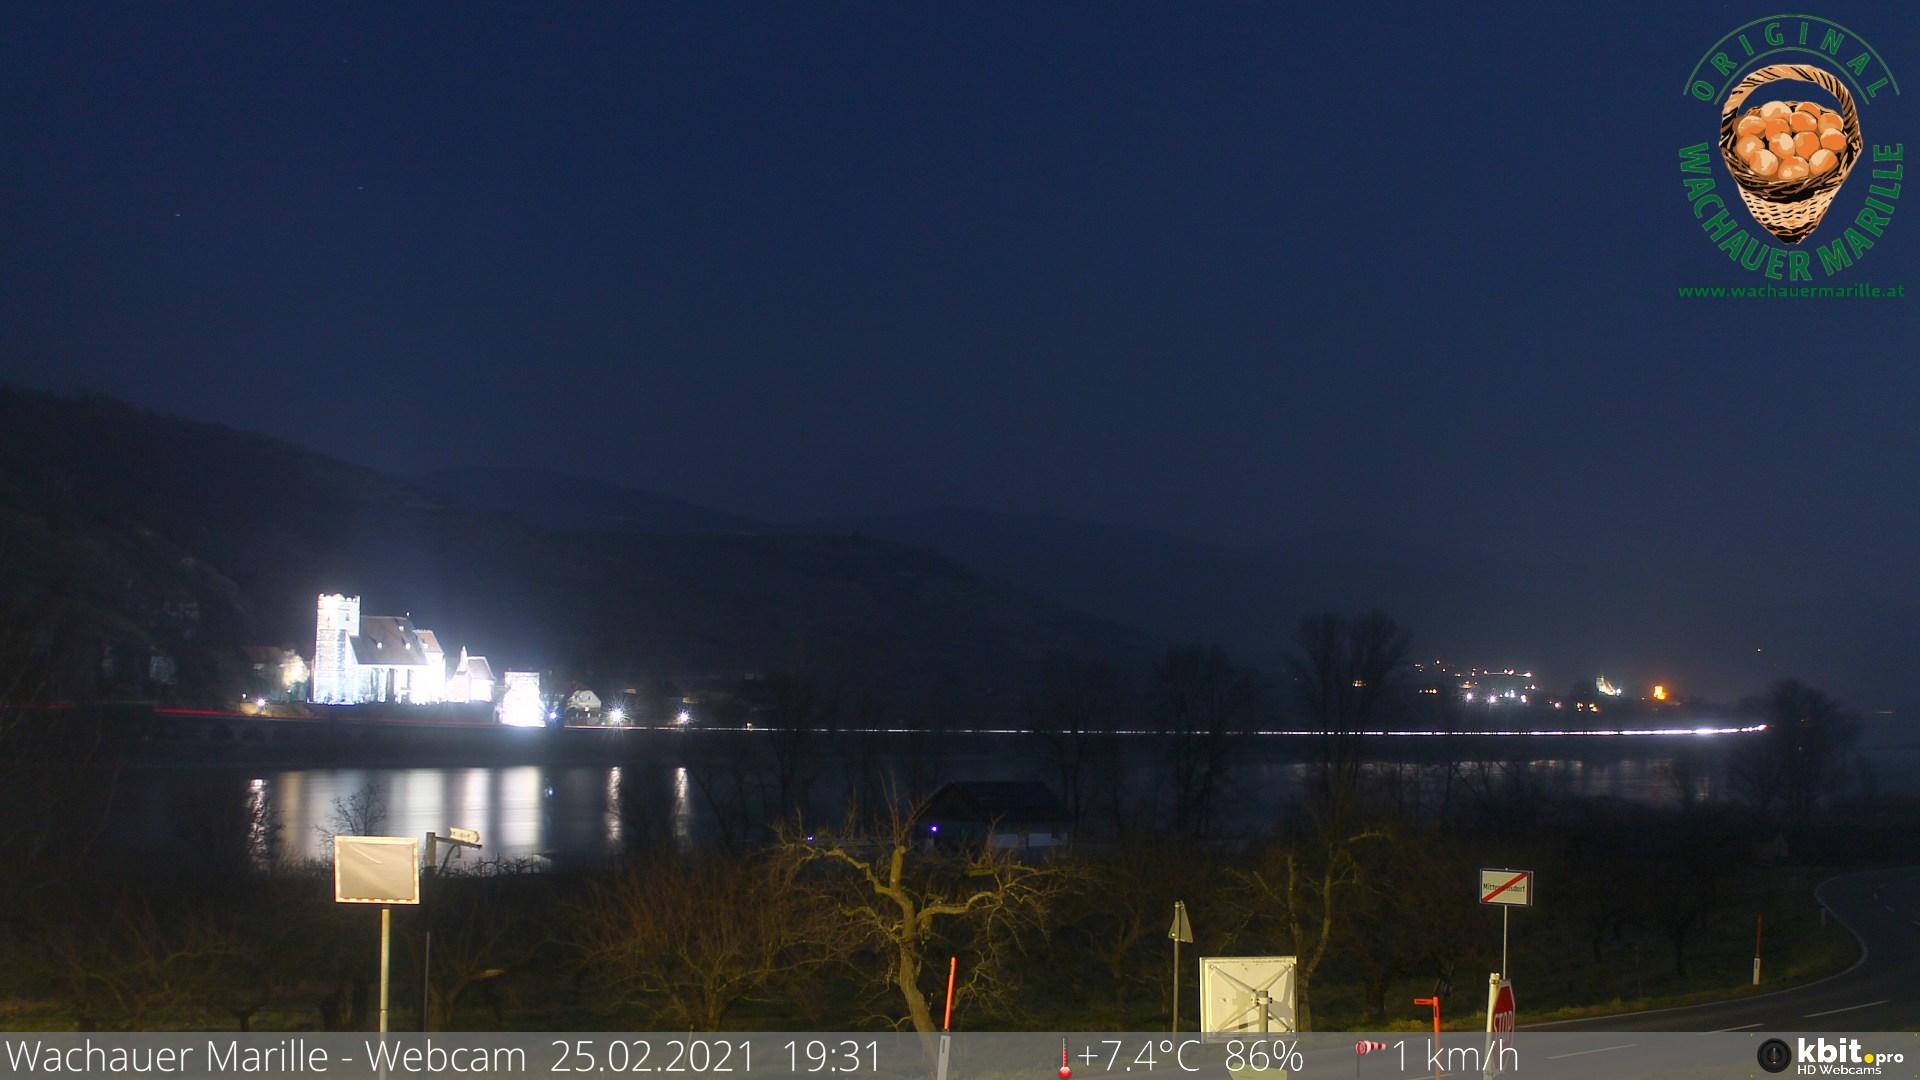 Webcam Mitterarnsdorf: Danube River